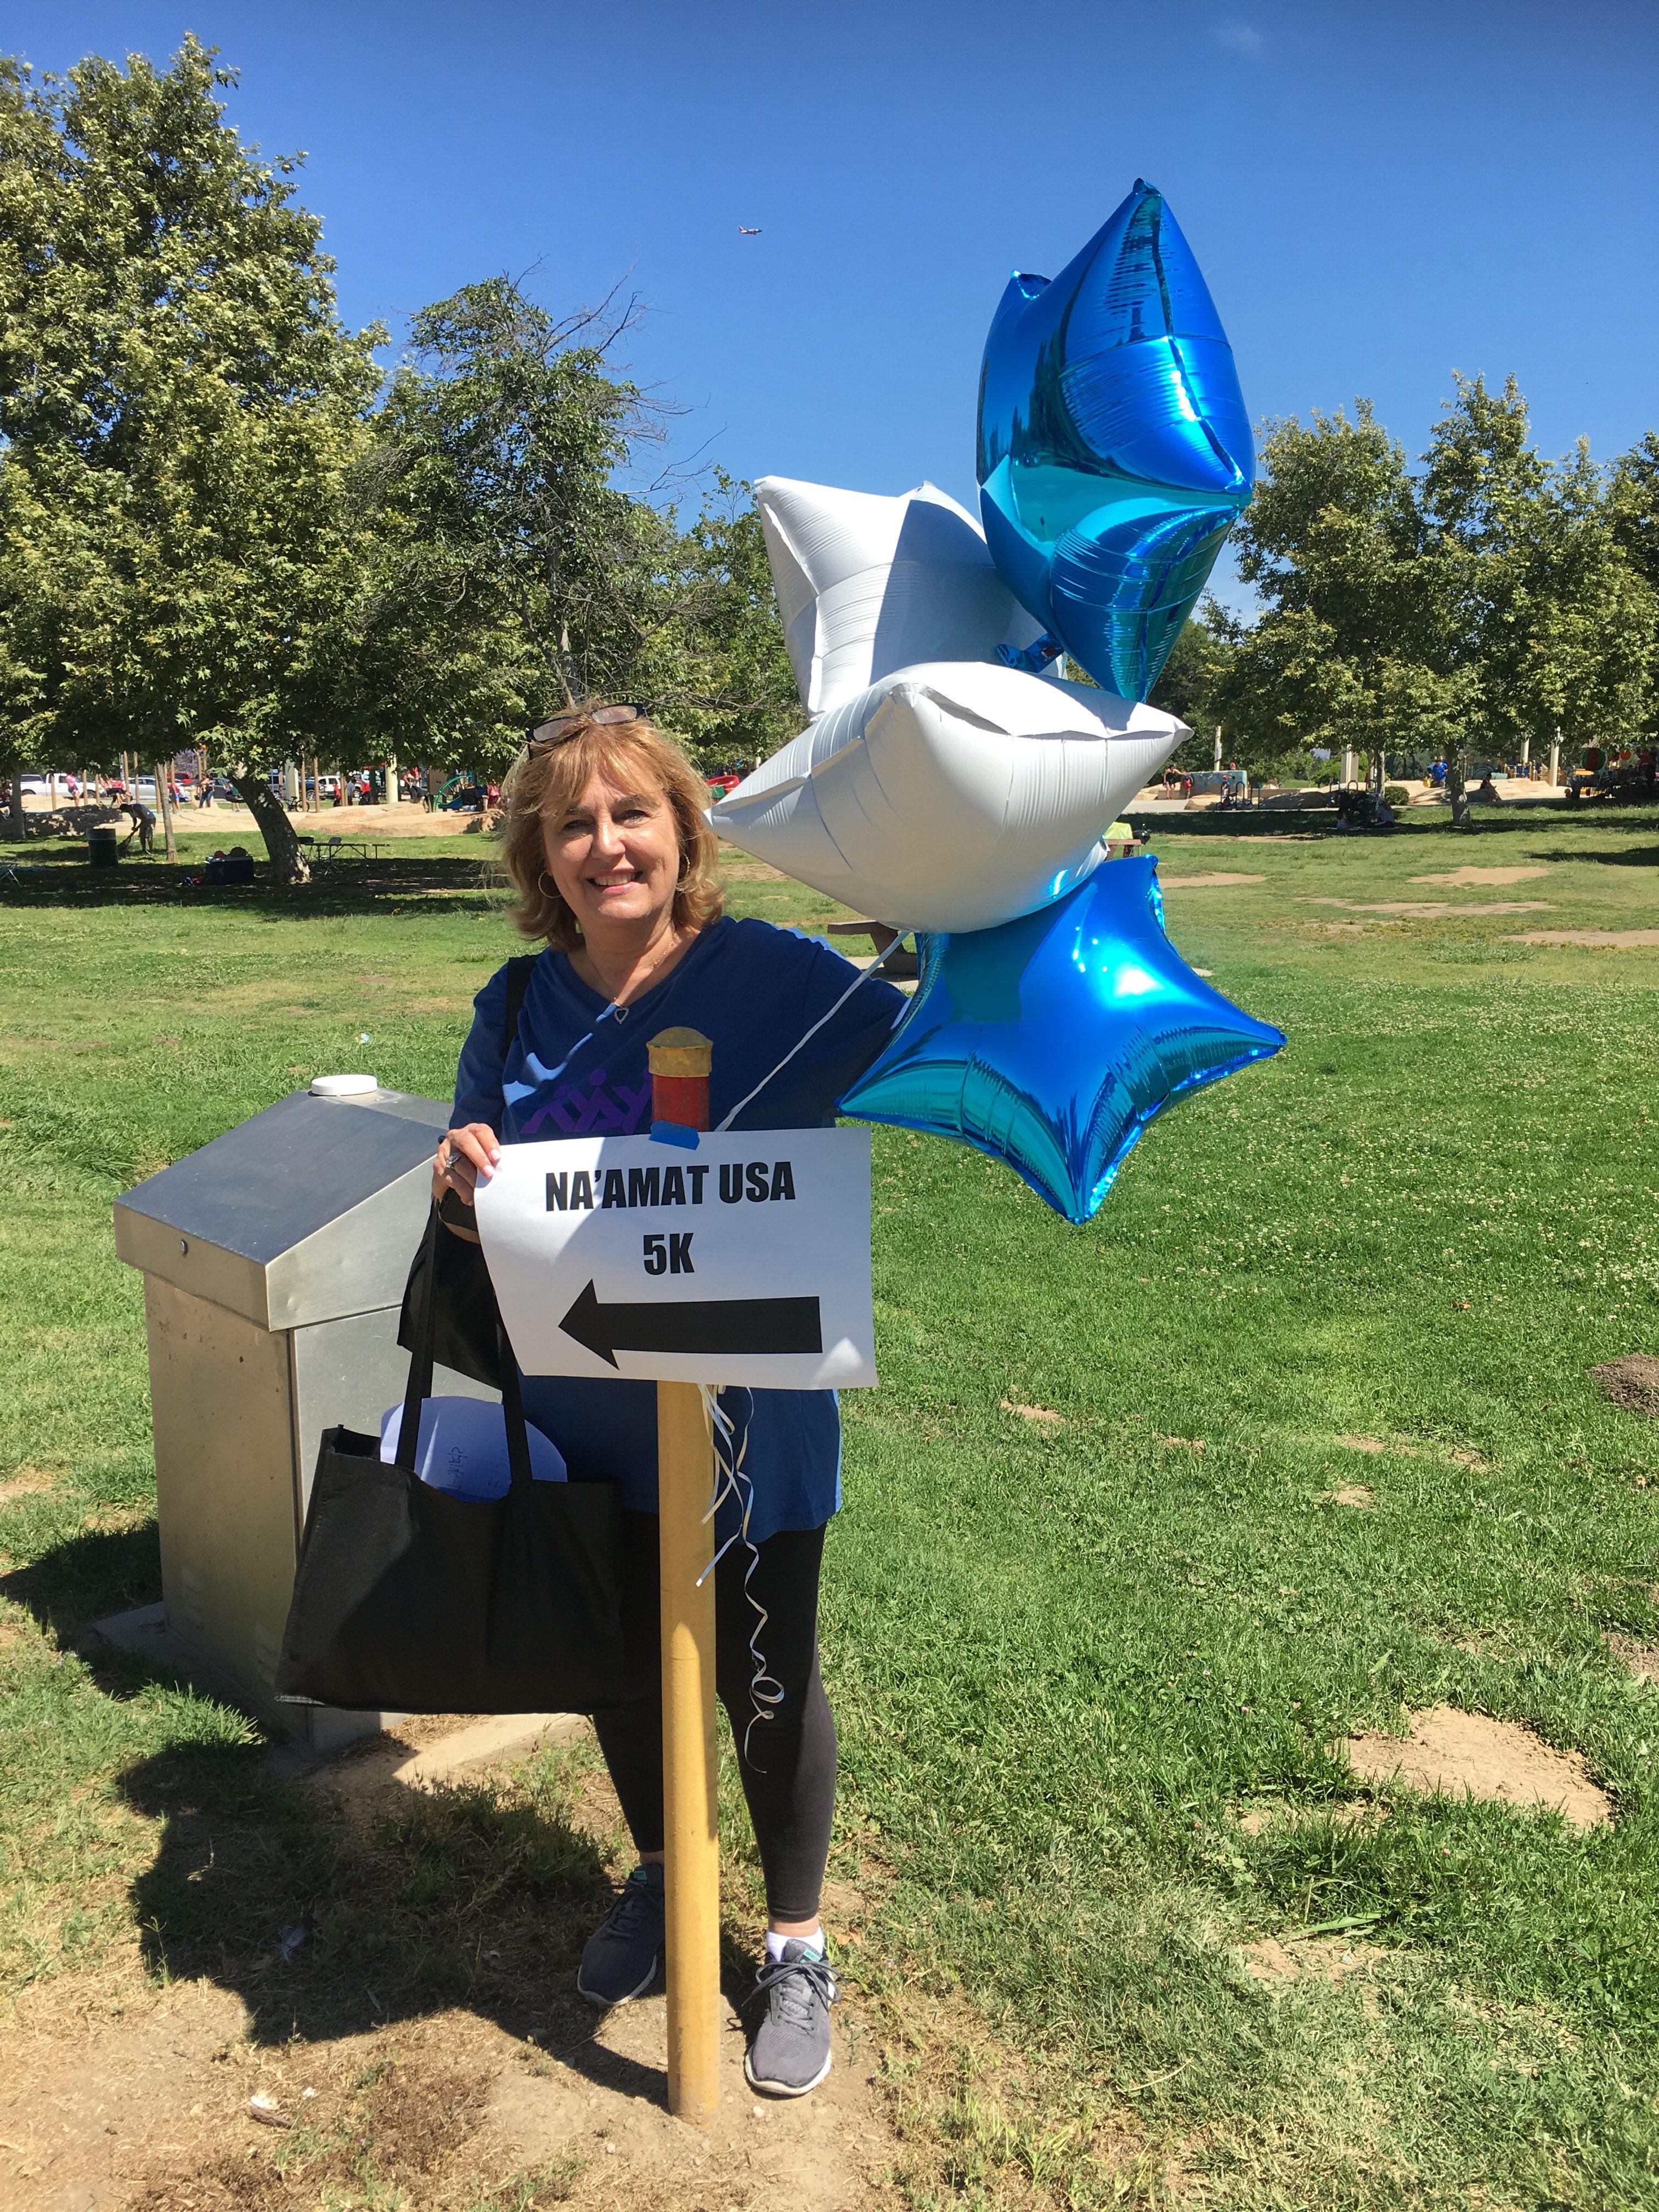 NA'AMAT 5K walk - photo of white and blue balloons and wayfinding sign